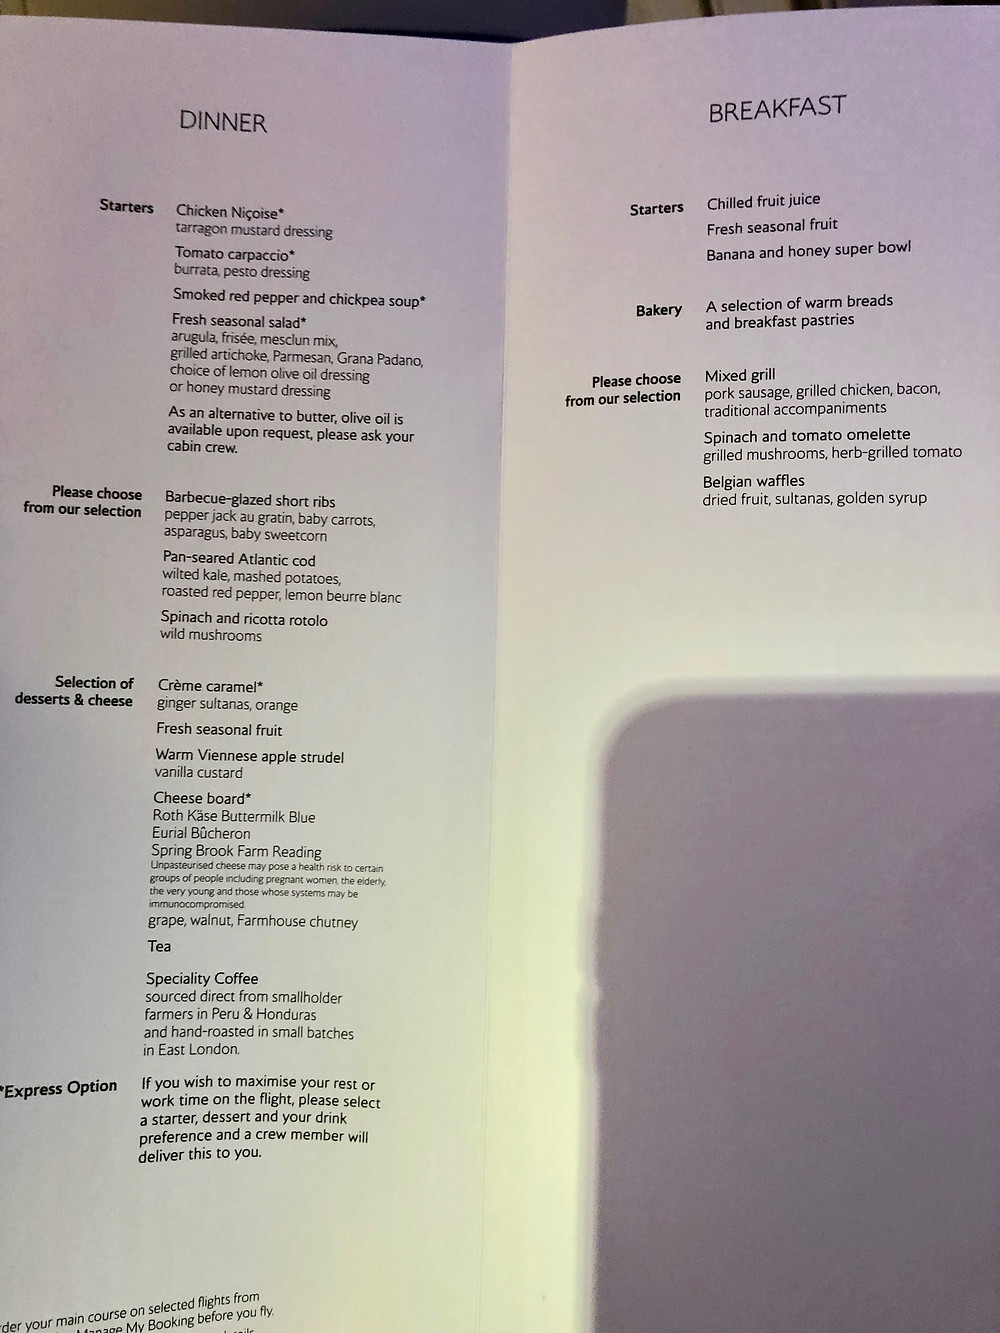 The Breakfast and Dinner Menus for Club World Business Class